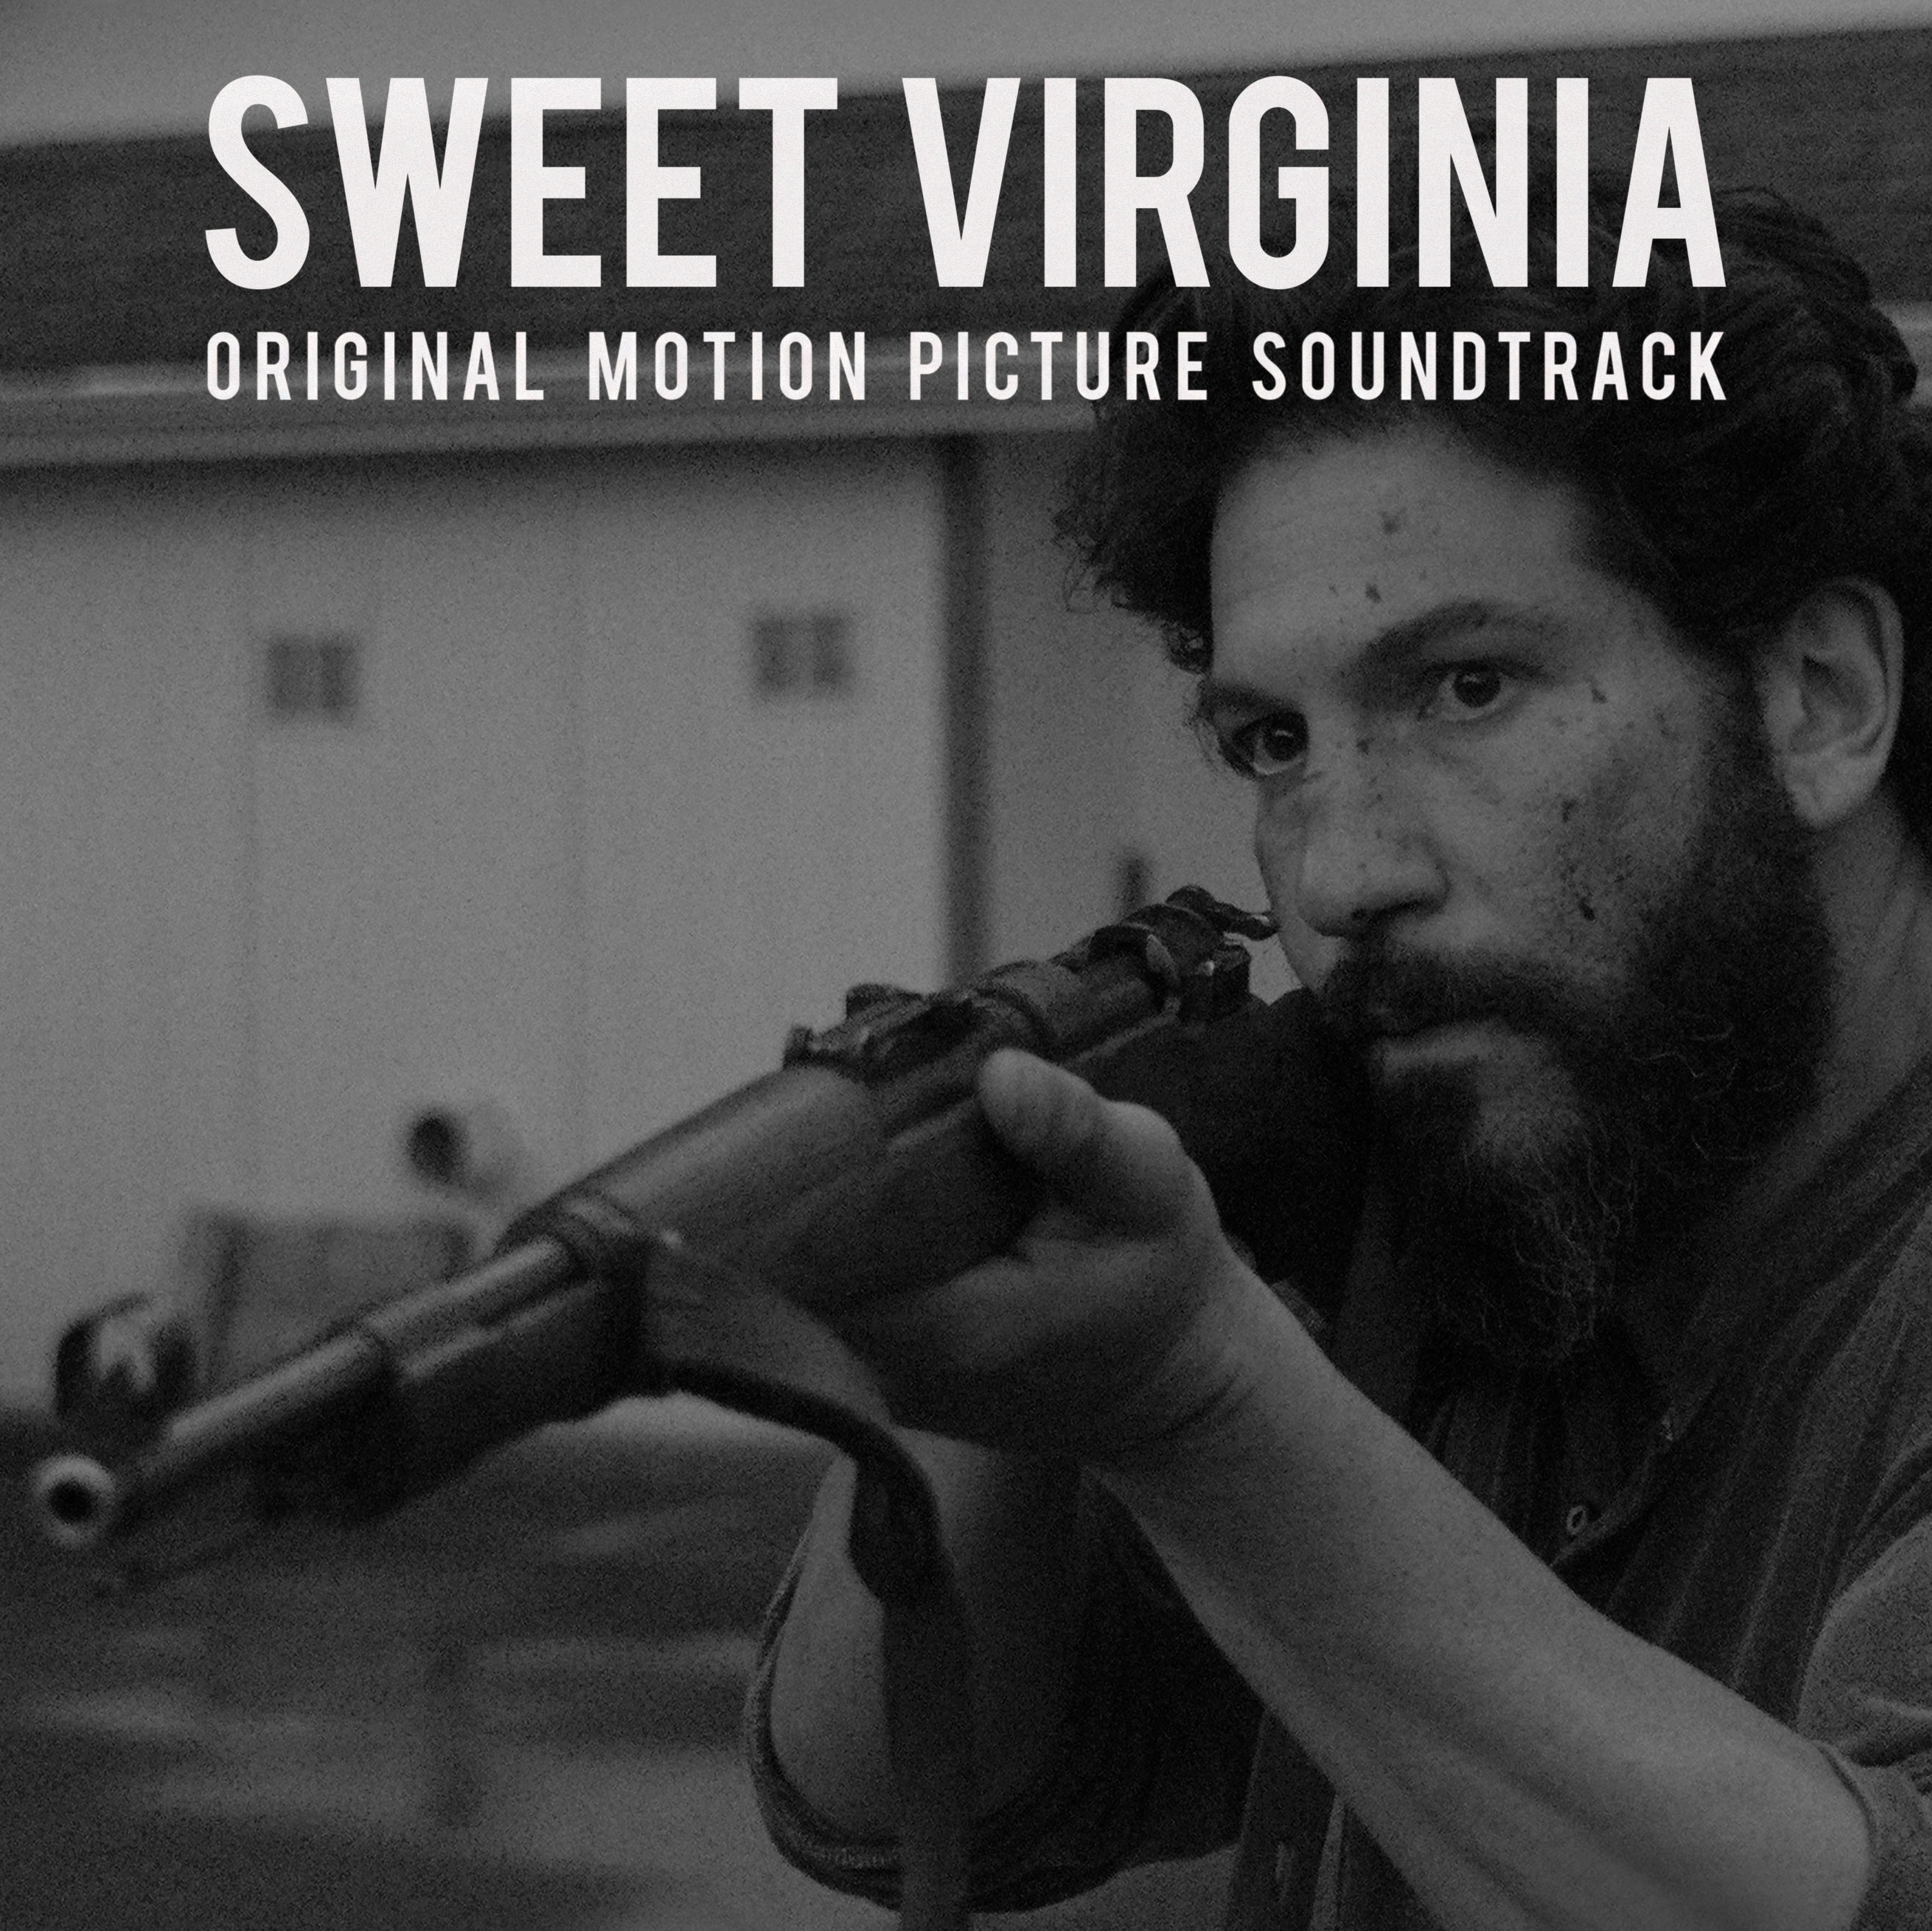 Blair_Sweet Virginia_front cover 3000x3000